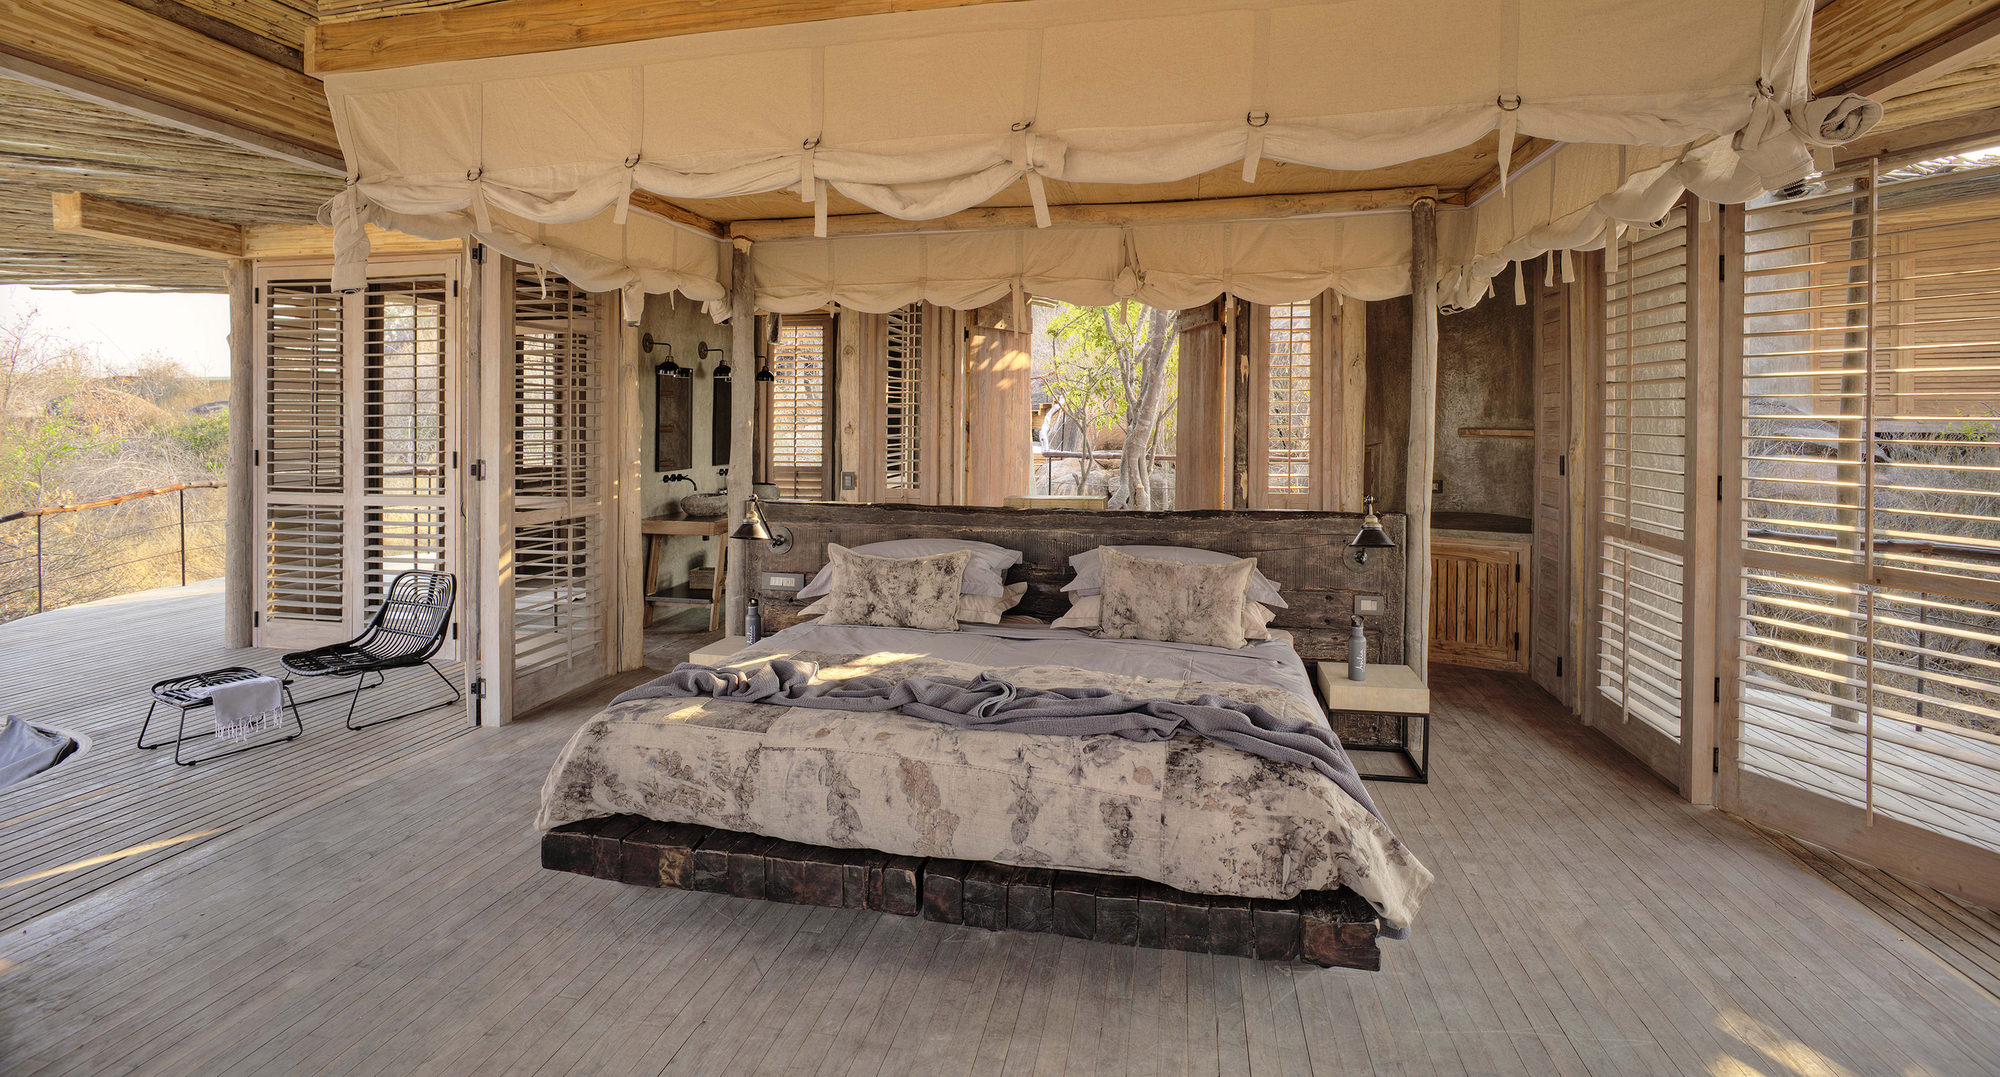 Spacious-bedroom-with-a-magical-view-of-Ruaha-National-Park